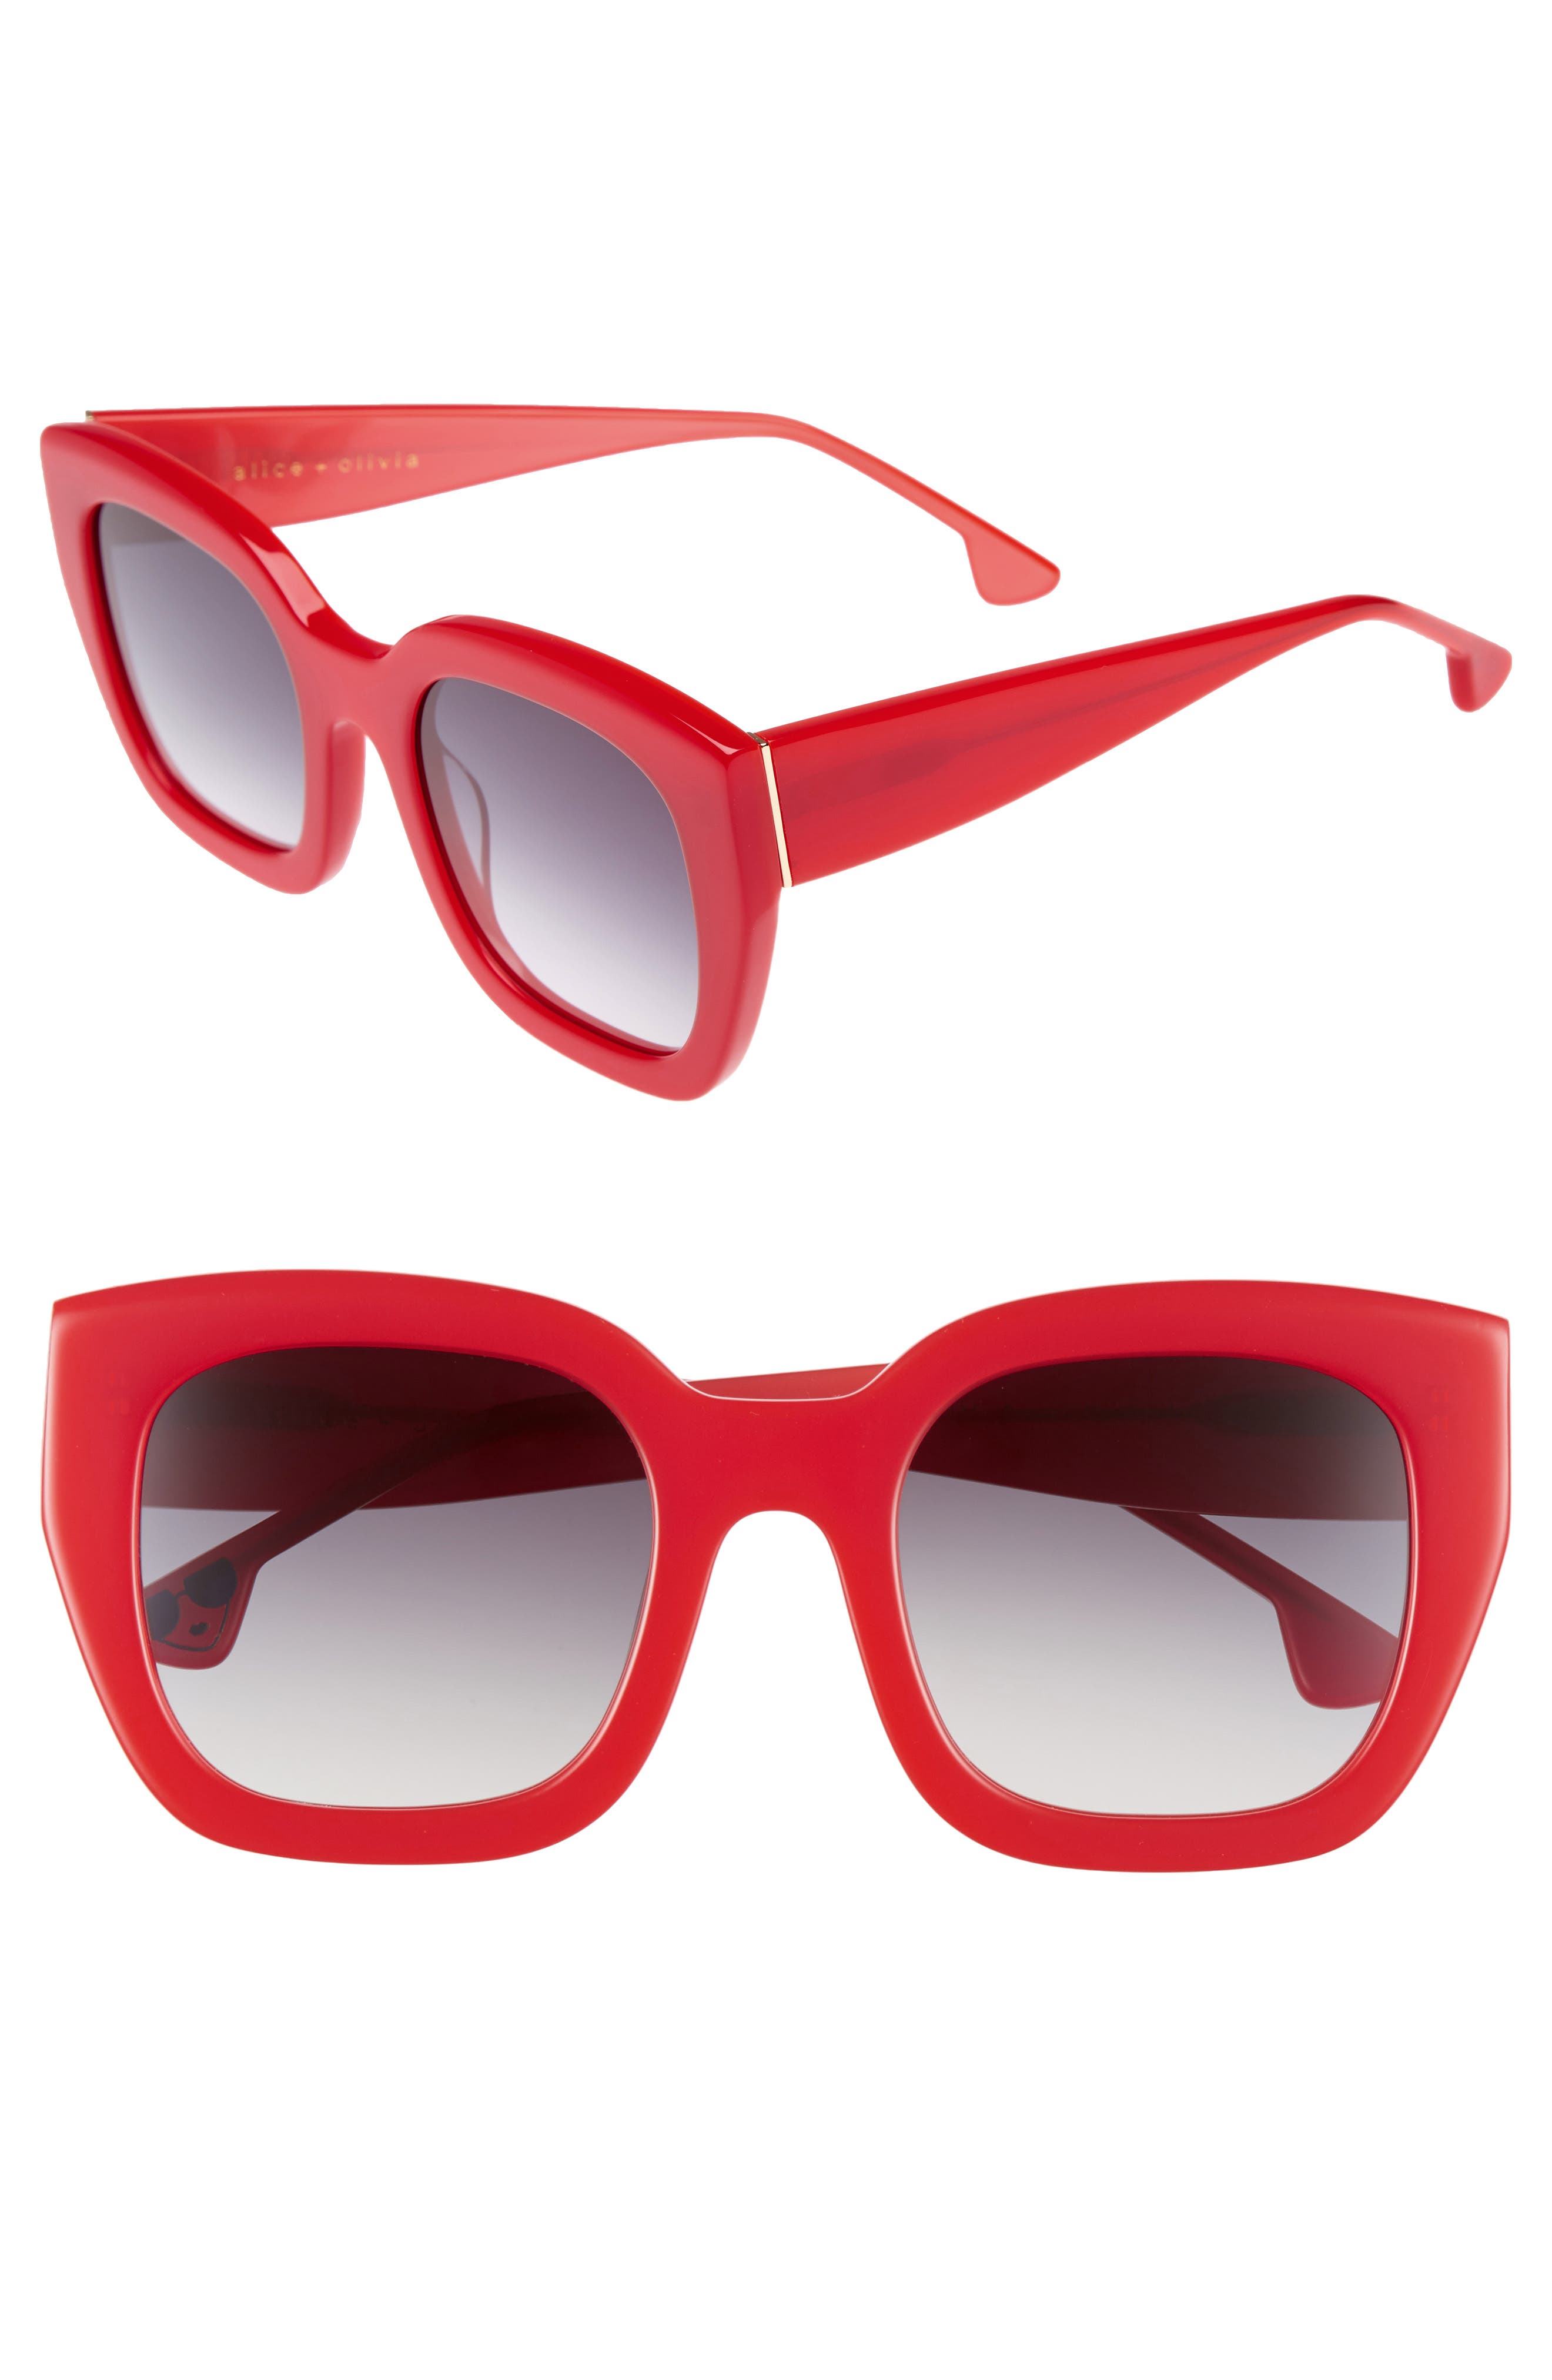 Aberdeen 50mm Square Sunglasses,                         Main,                         color, Poppy